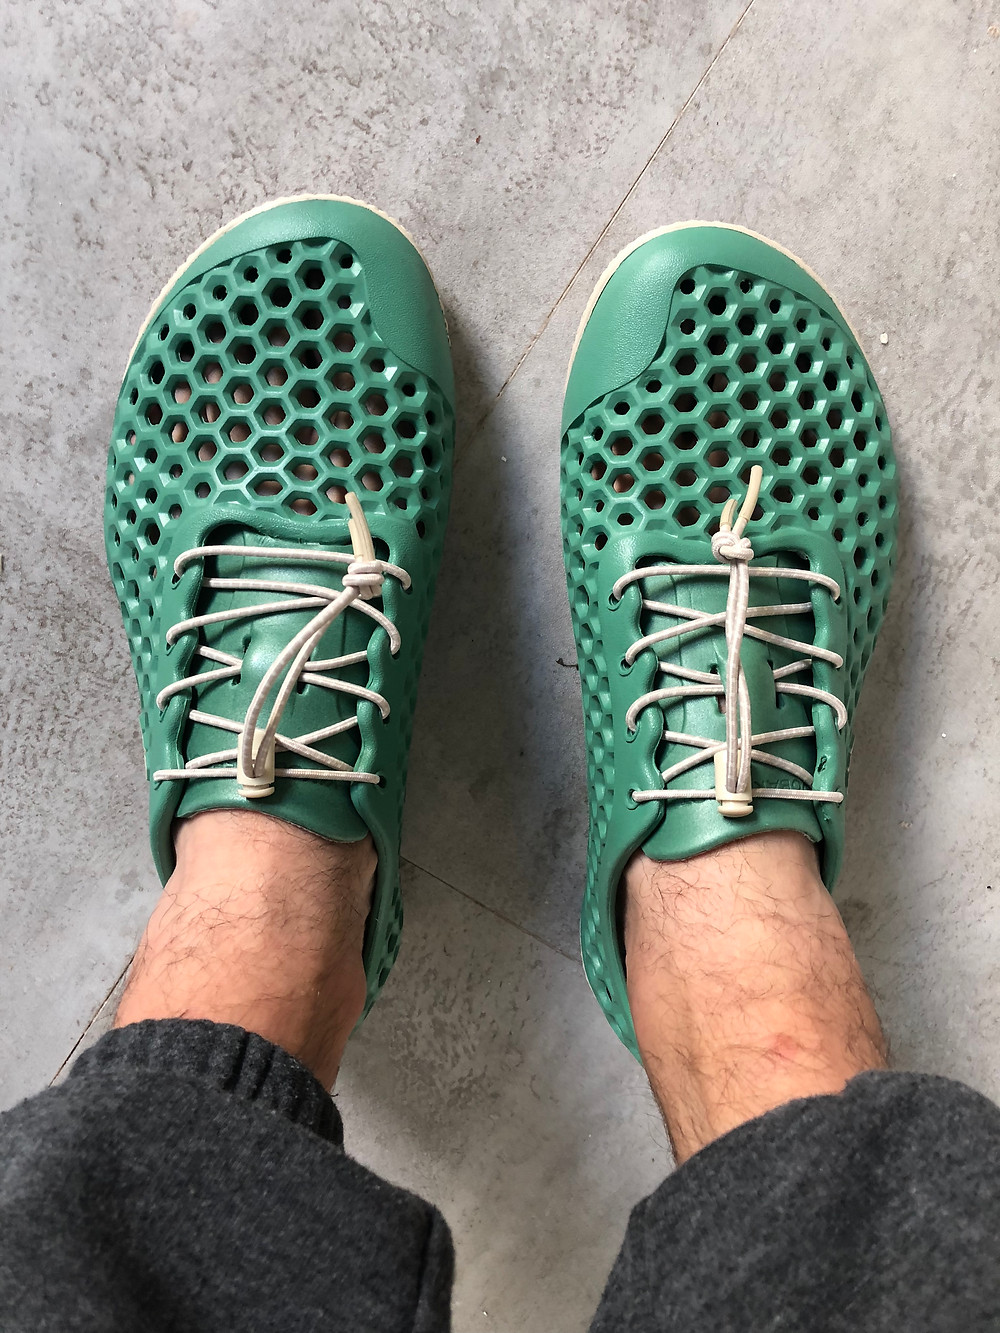 Vivo Barefoot shoes are a great way to help prevent ankle sprains